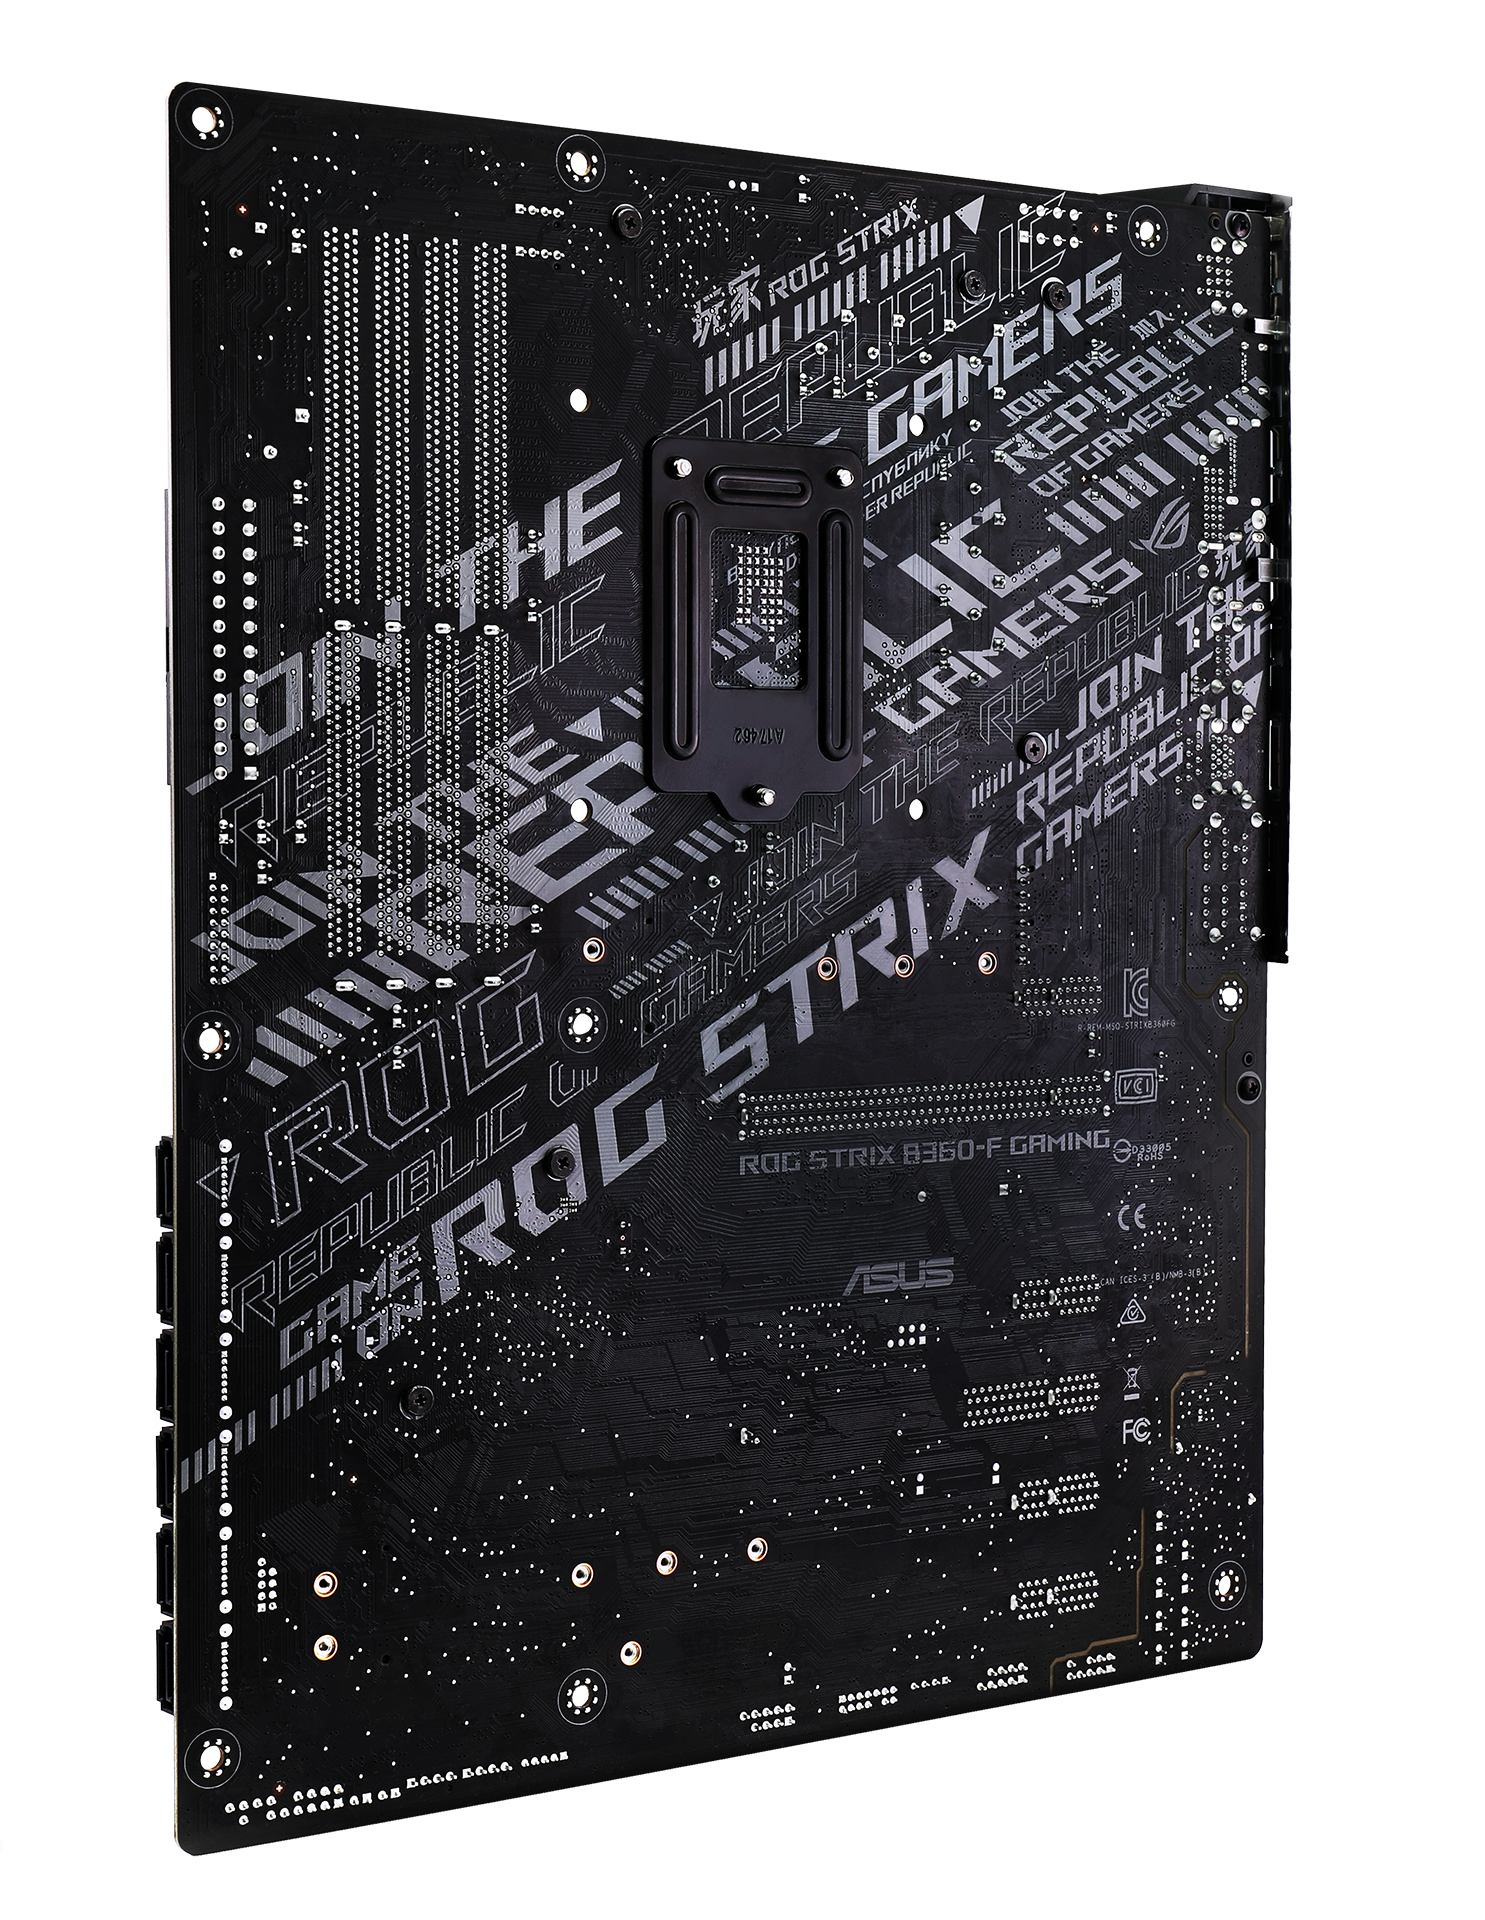 Review Asus Rog Strix B360 F Gaming Intel Mainboard There Are 2 Boards The Main Board And A Second One For Controls In Nutshell If You Using Single Graphics Card Pcie Riding Expansion An M2 Drive Will Be Fine Want To Go Bigger